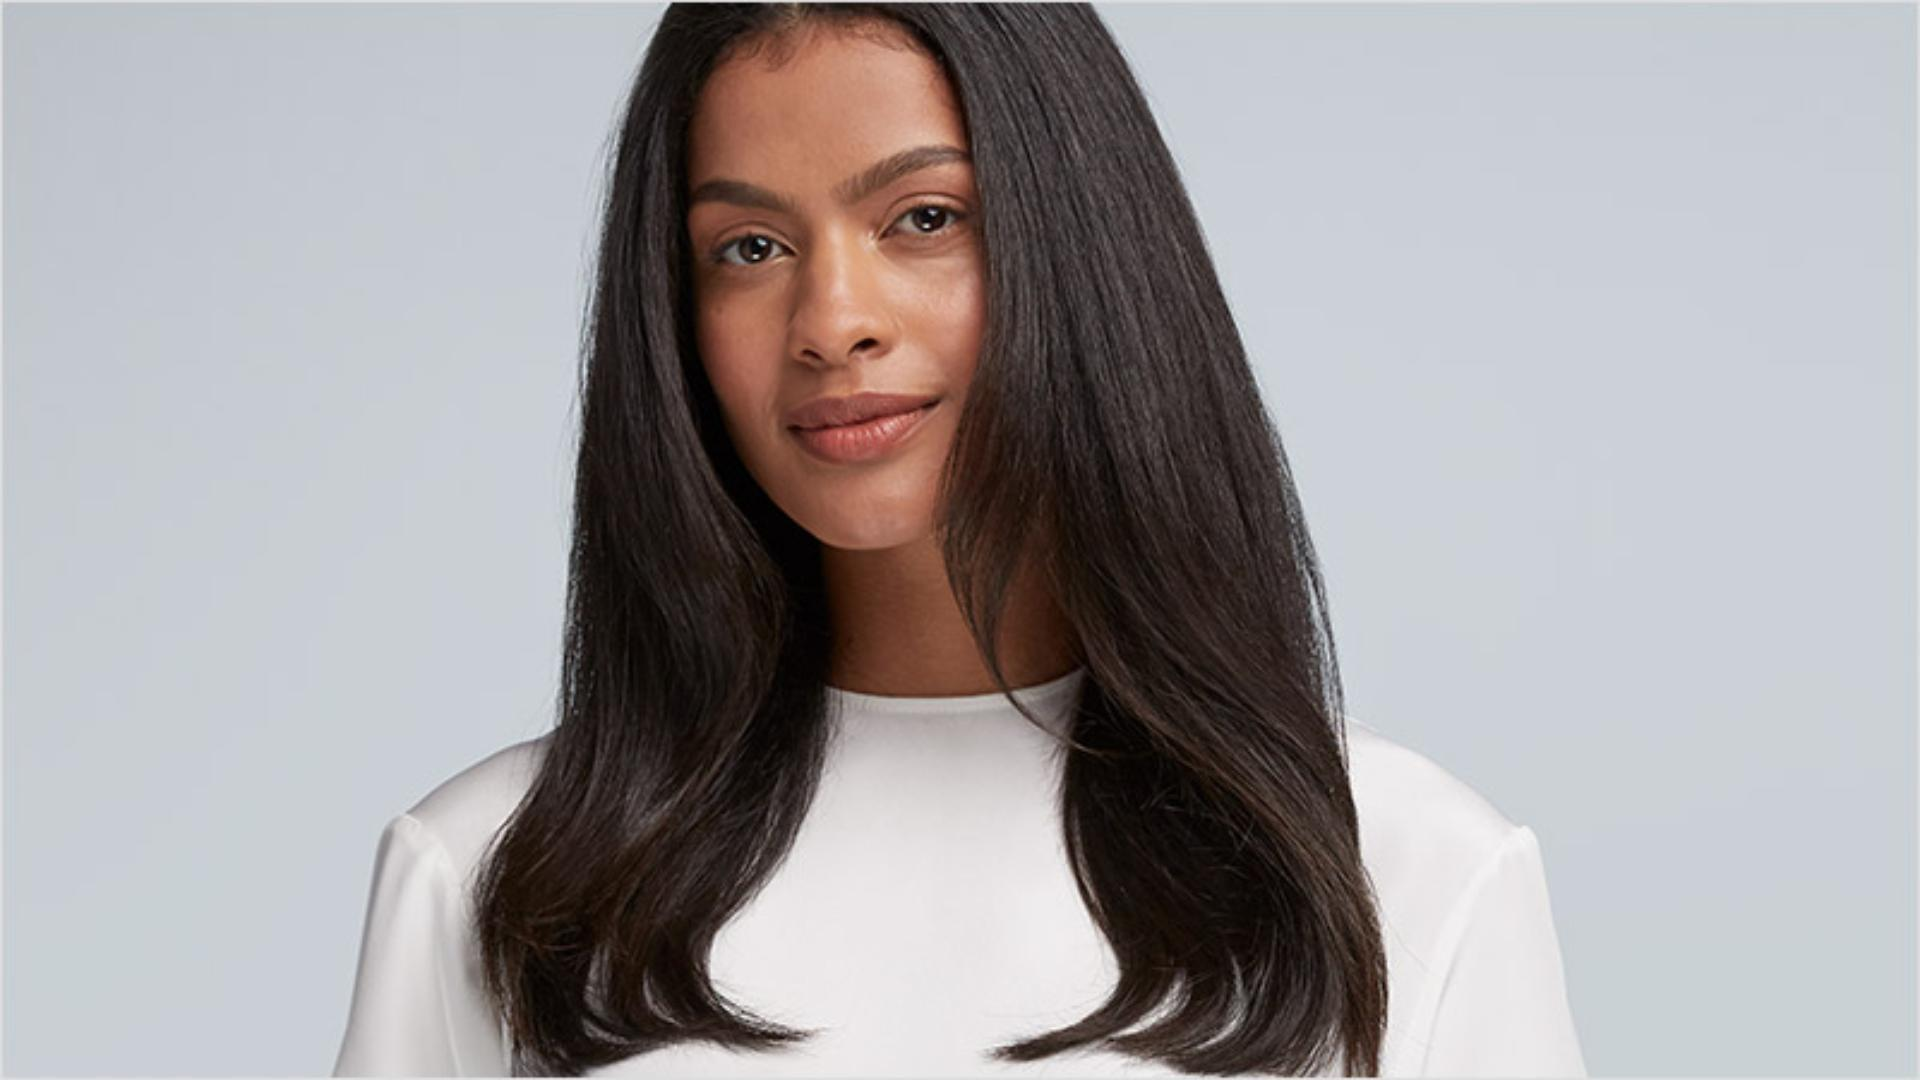 Model with smooth, straight hair